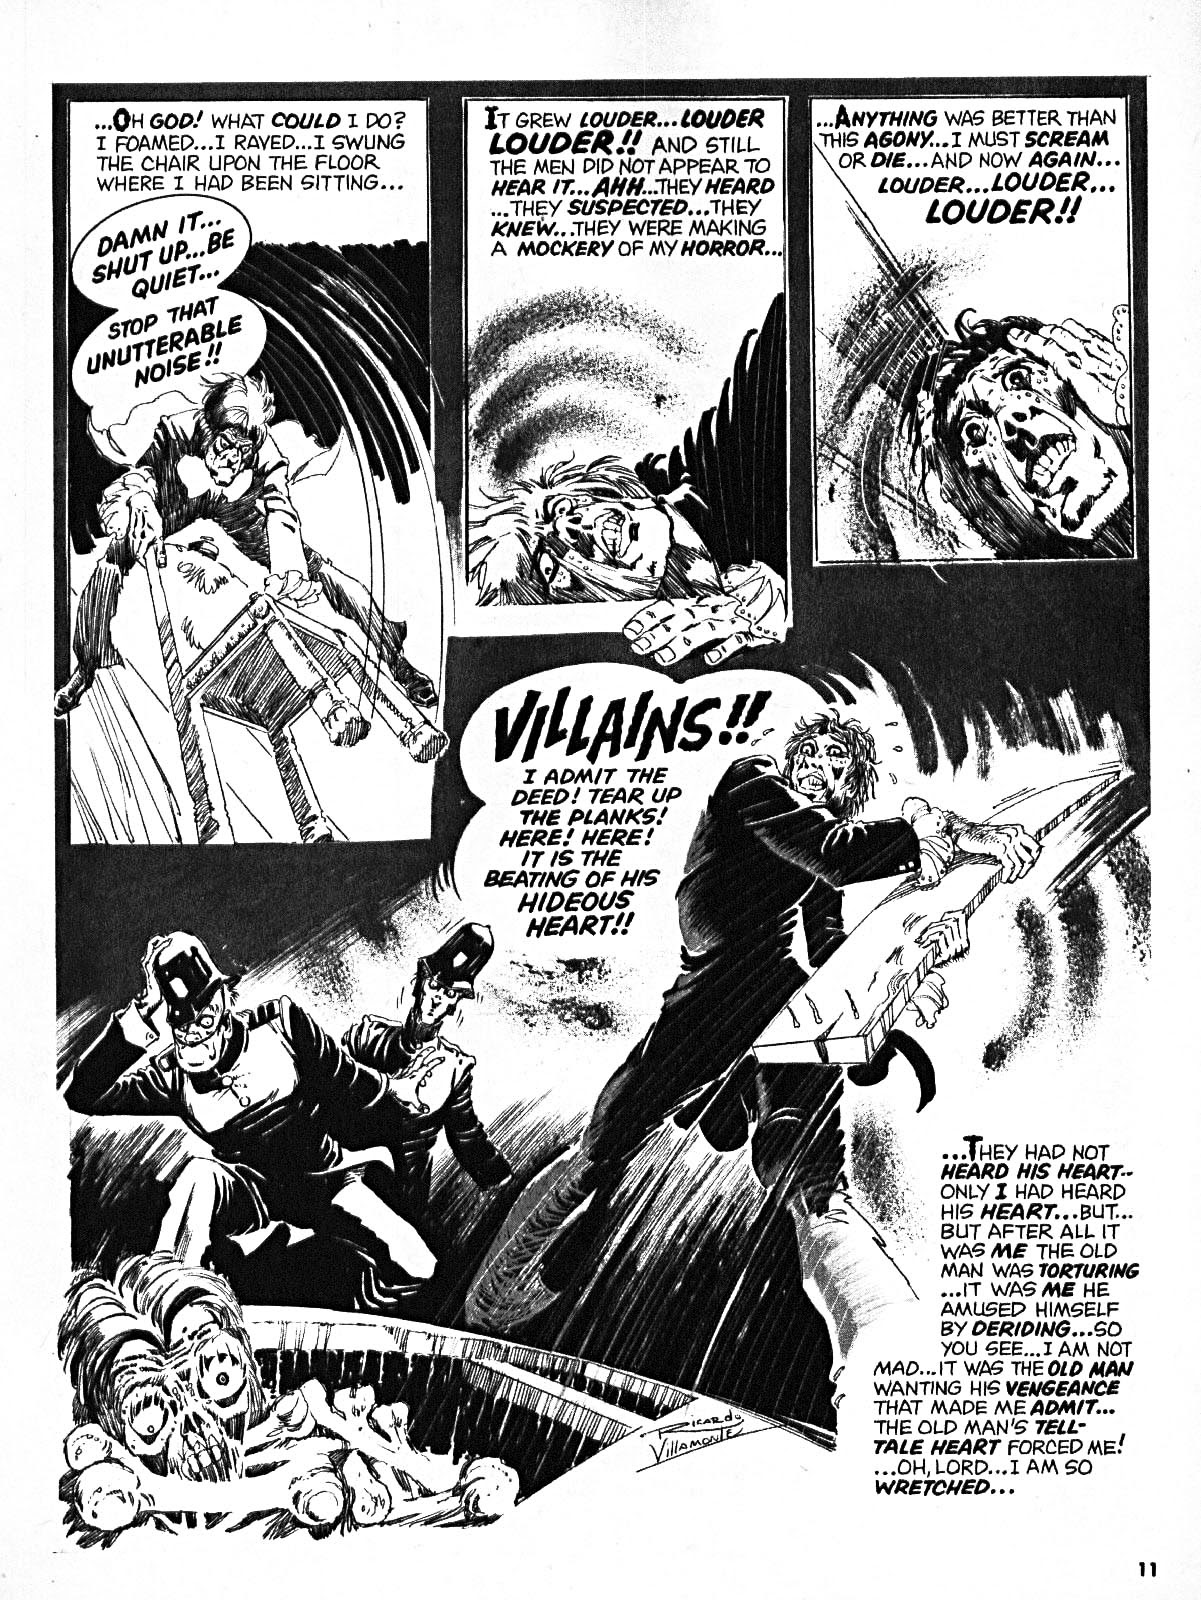 Scream (1973) issue 8 - Page 11